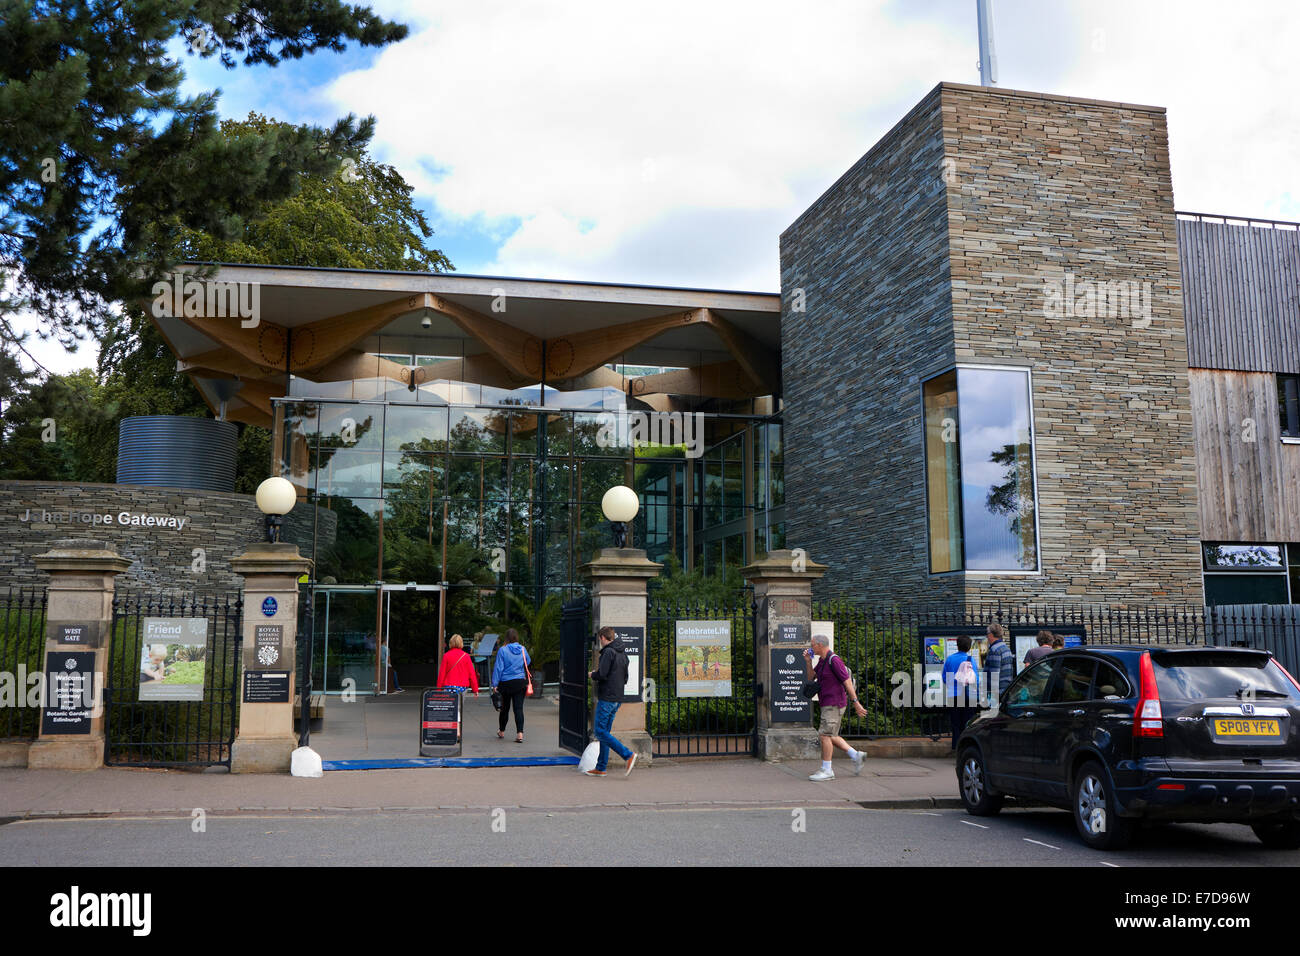 John Hope Gateway. West Gate. Royal Botanic Garden Edinburgh - Stock Image